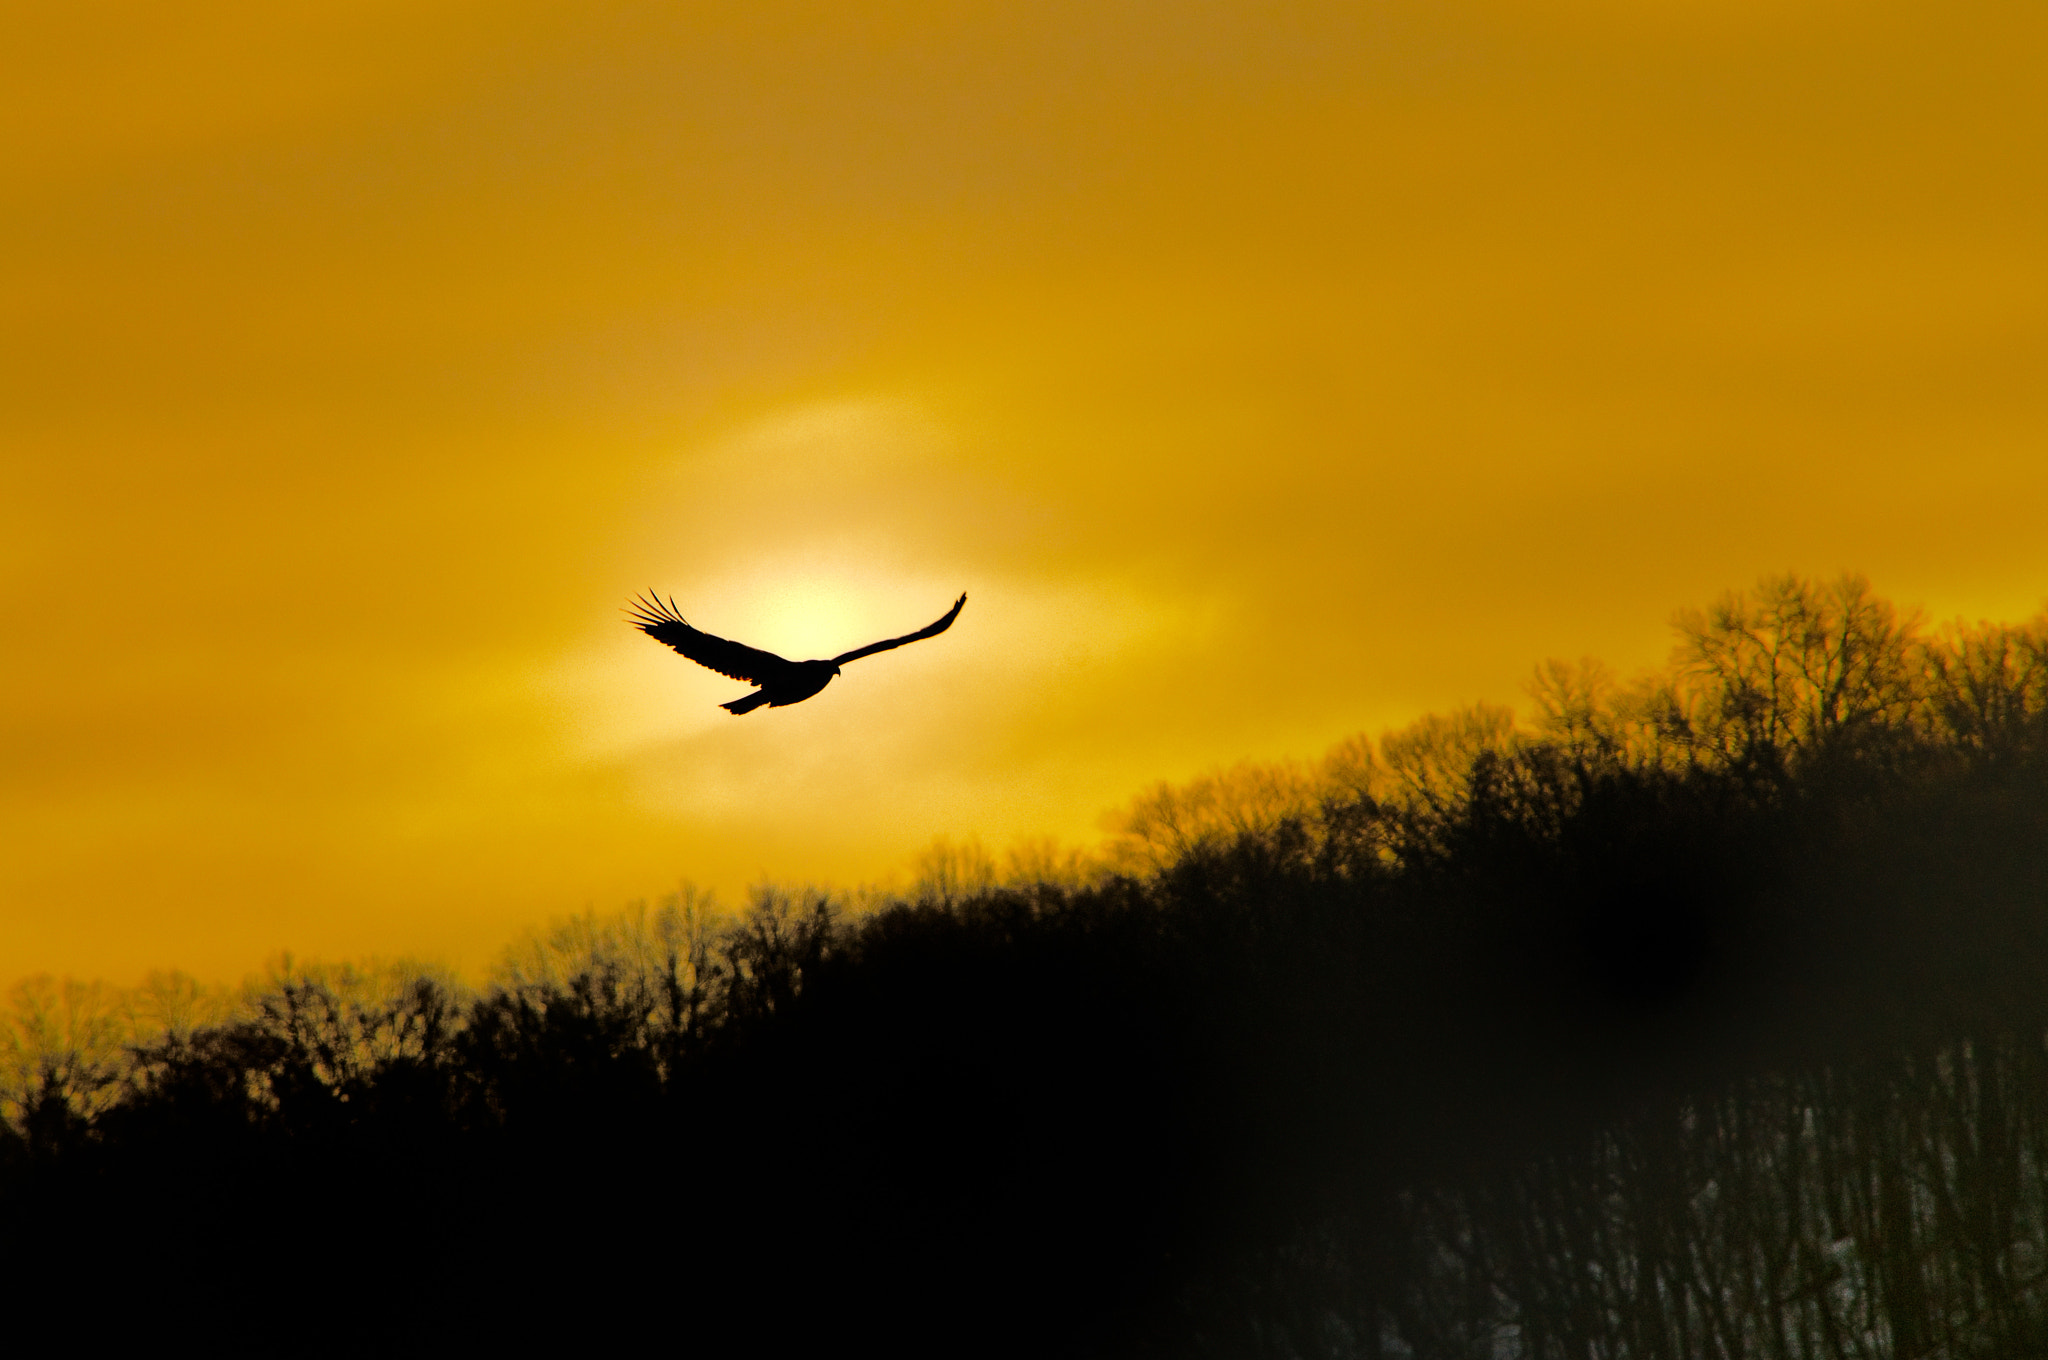 Photograph Soaring by Steve Wetzel on 500px